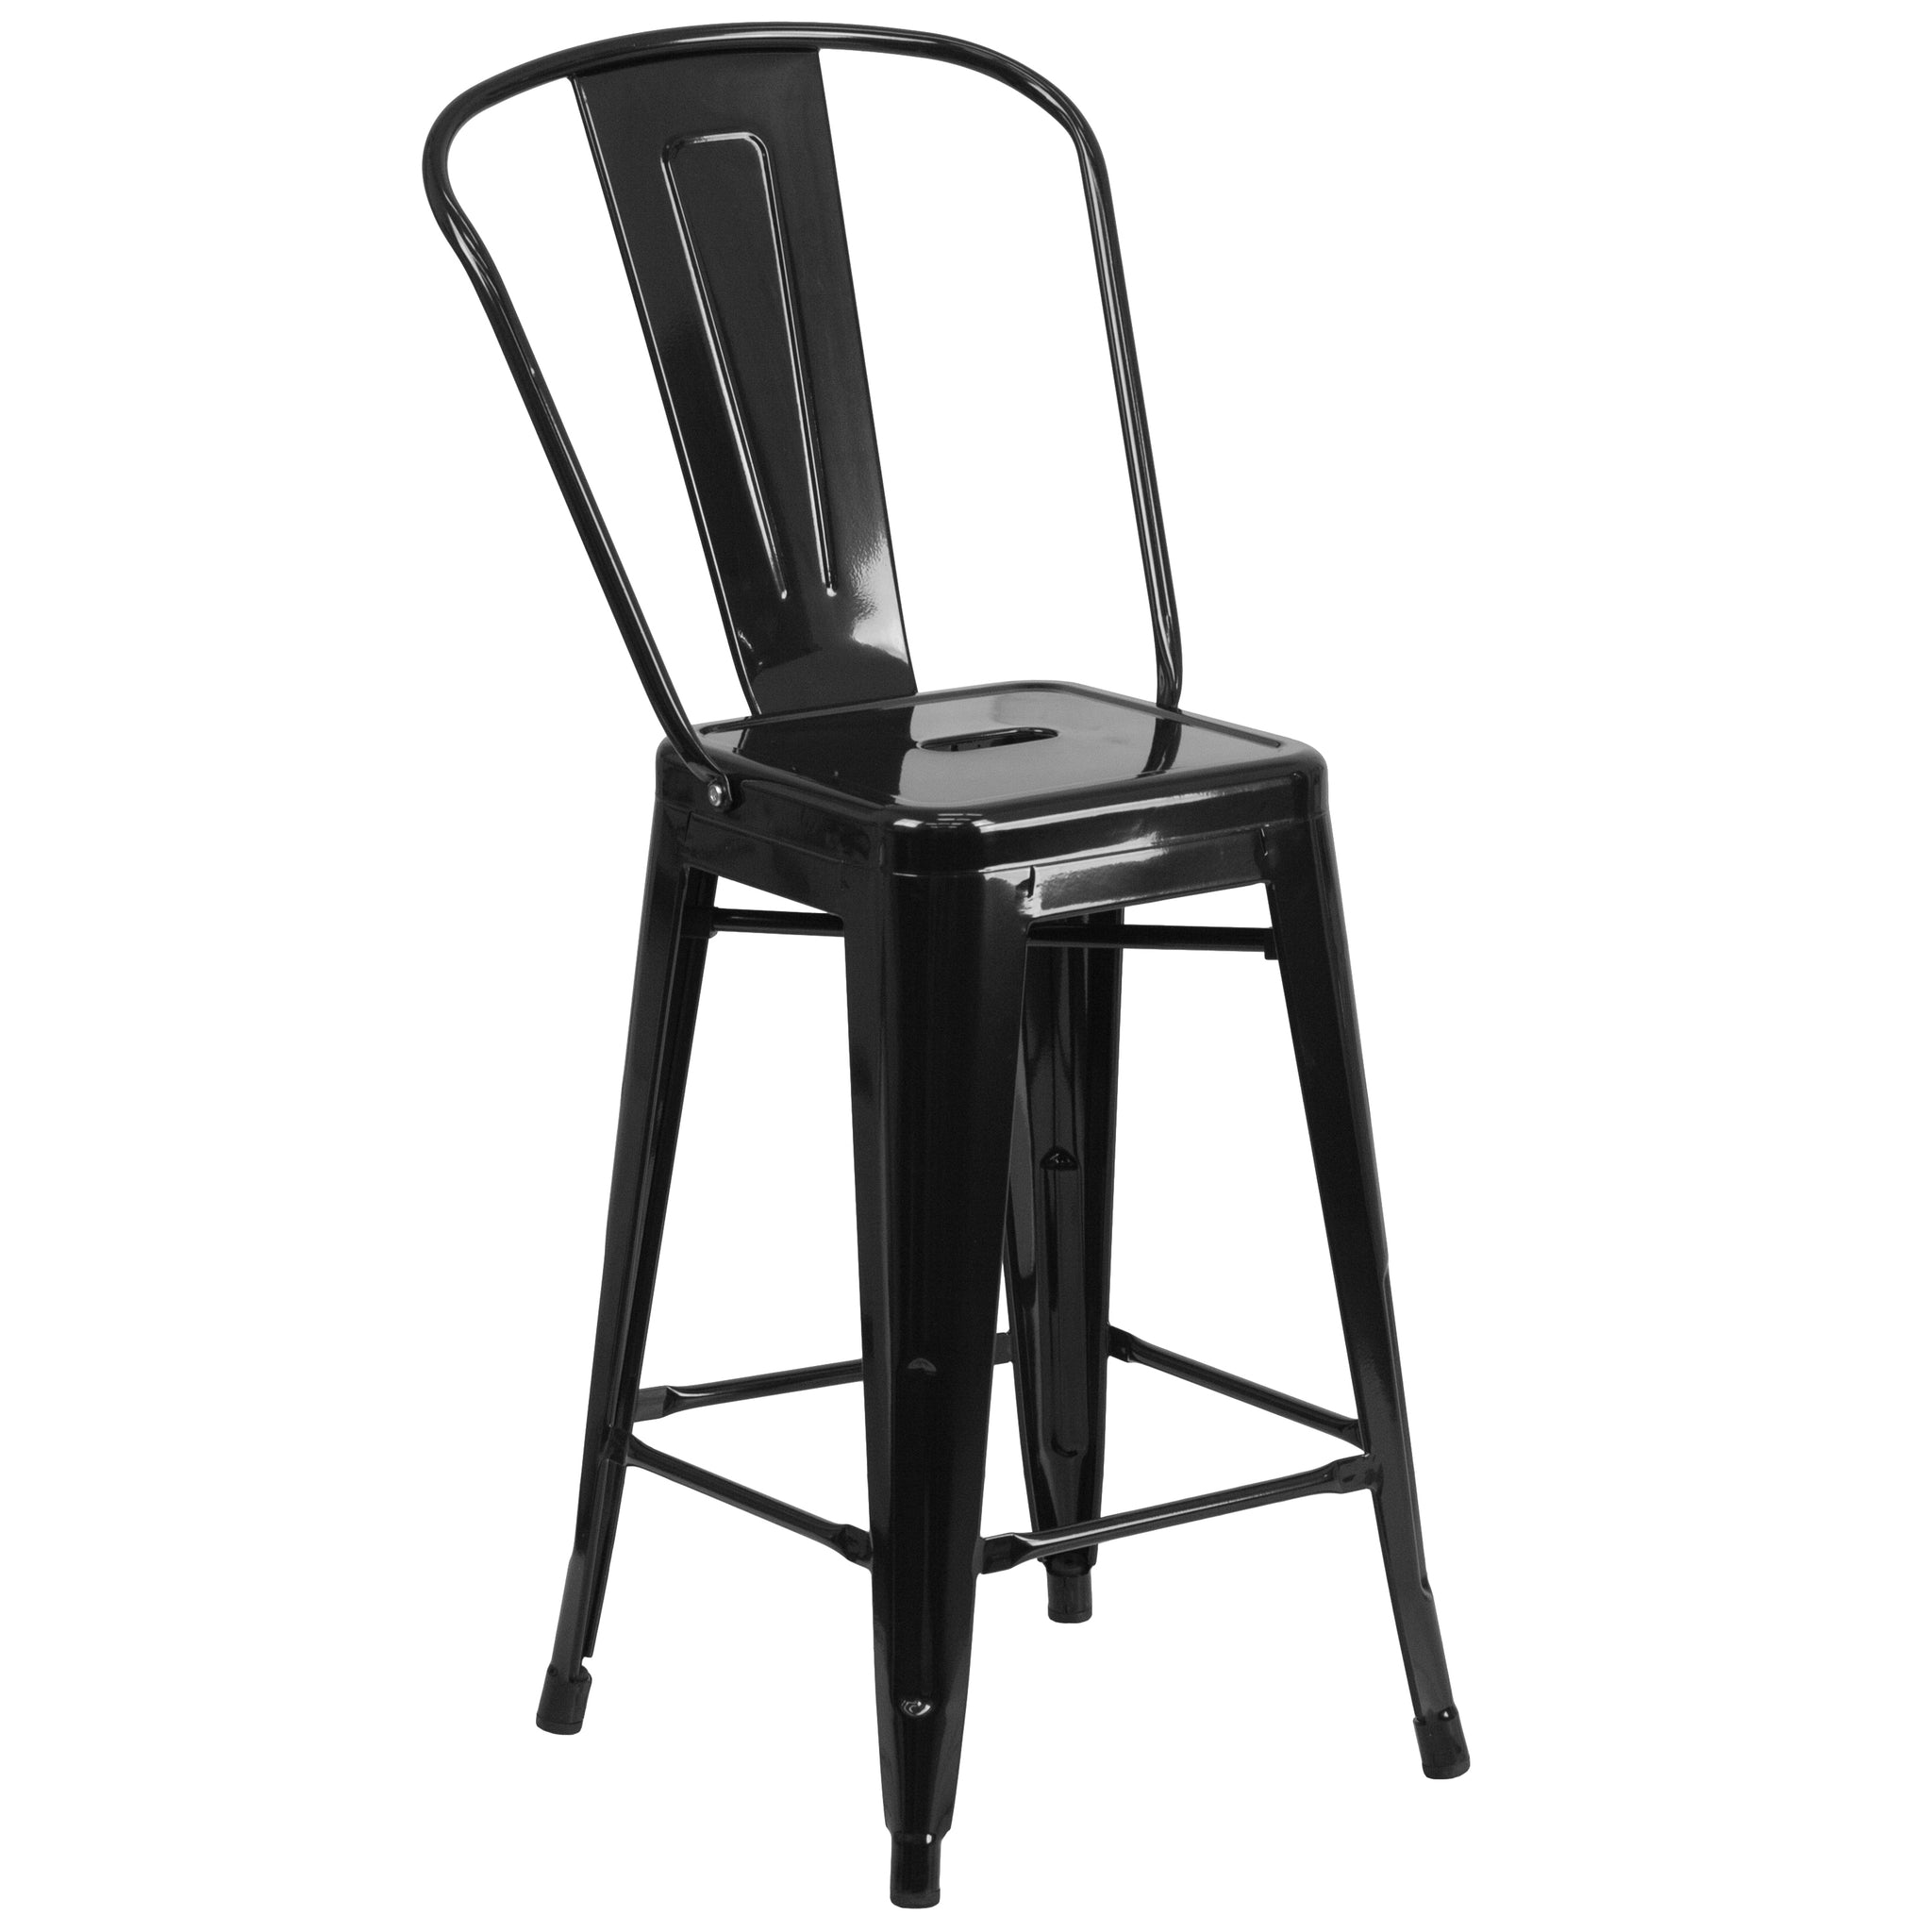 24'' High Metal Indoor-Outdoor Counter Height Stool with Back: Black